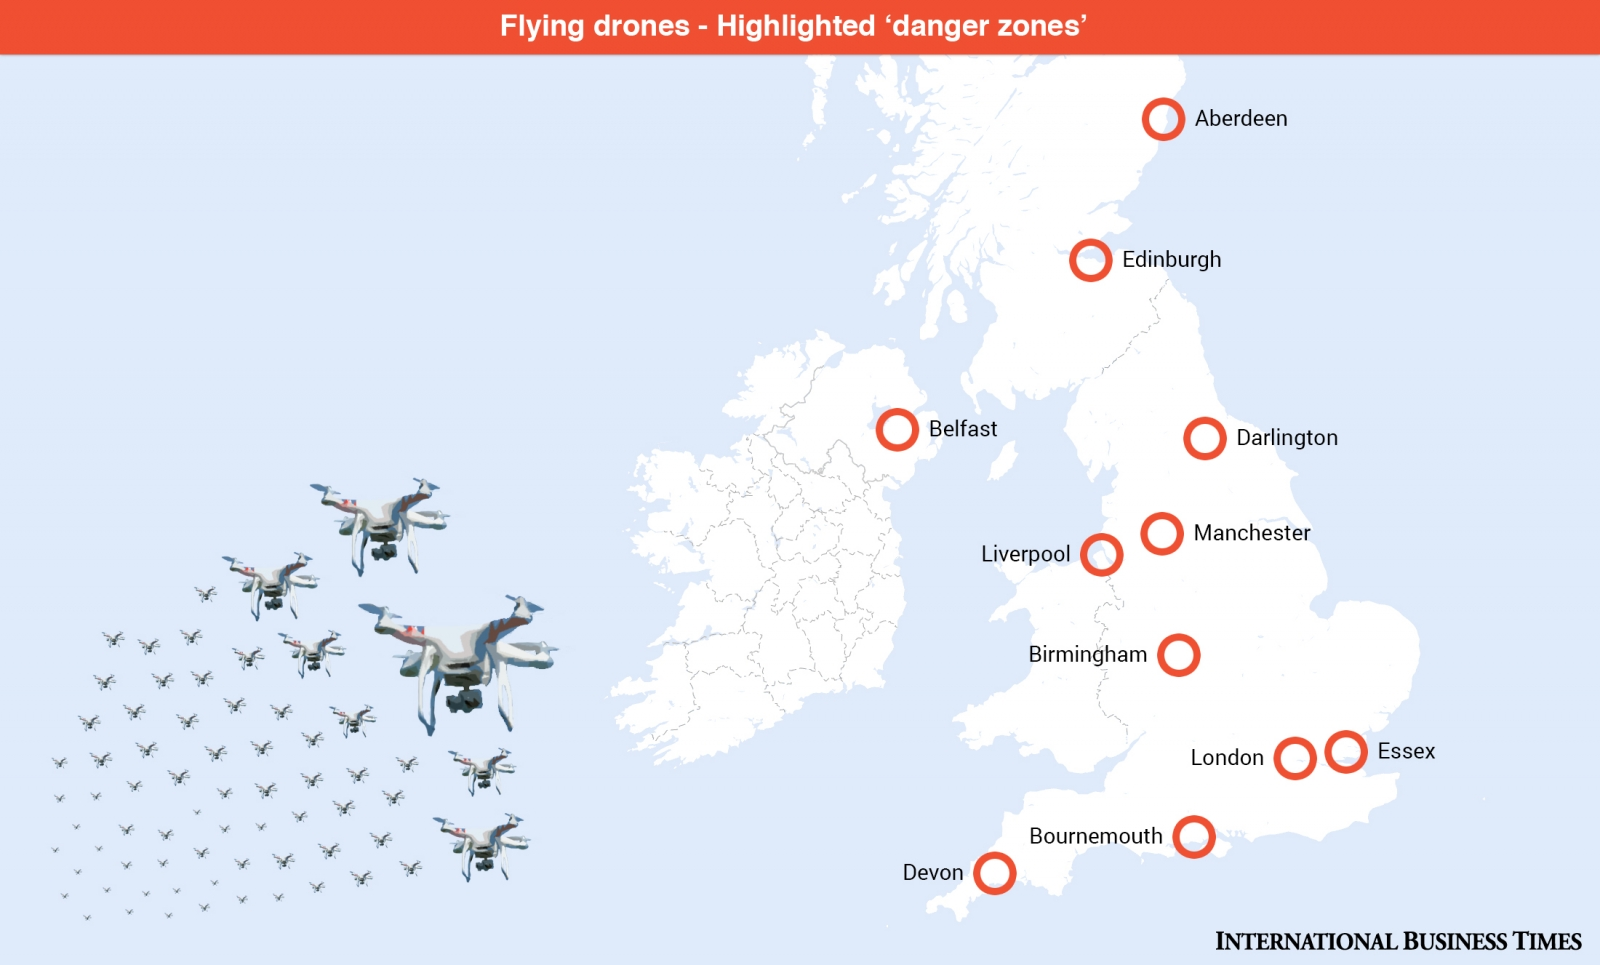 Some No Fly Zones in the UK